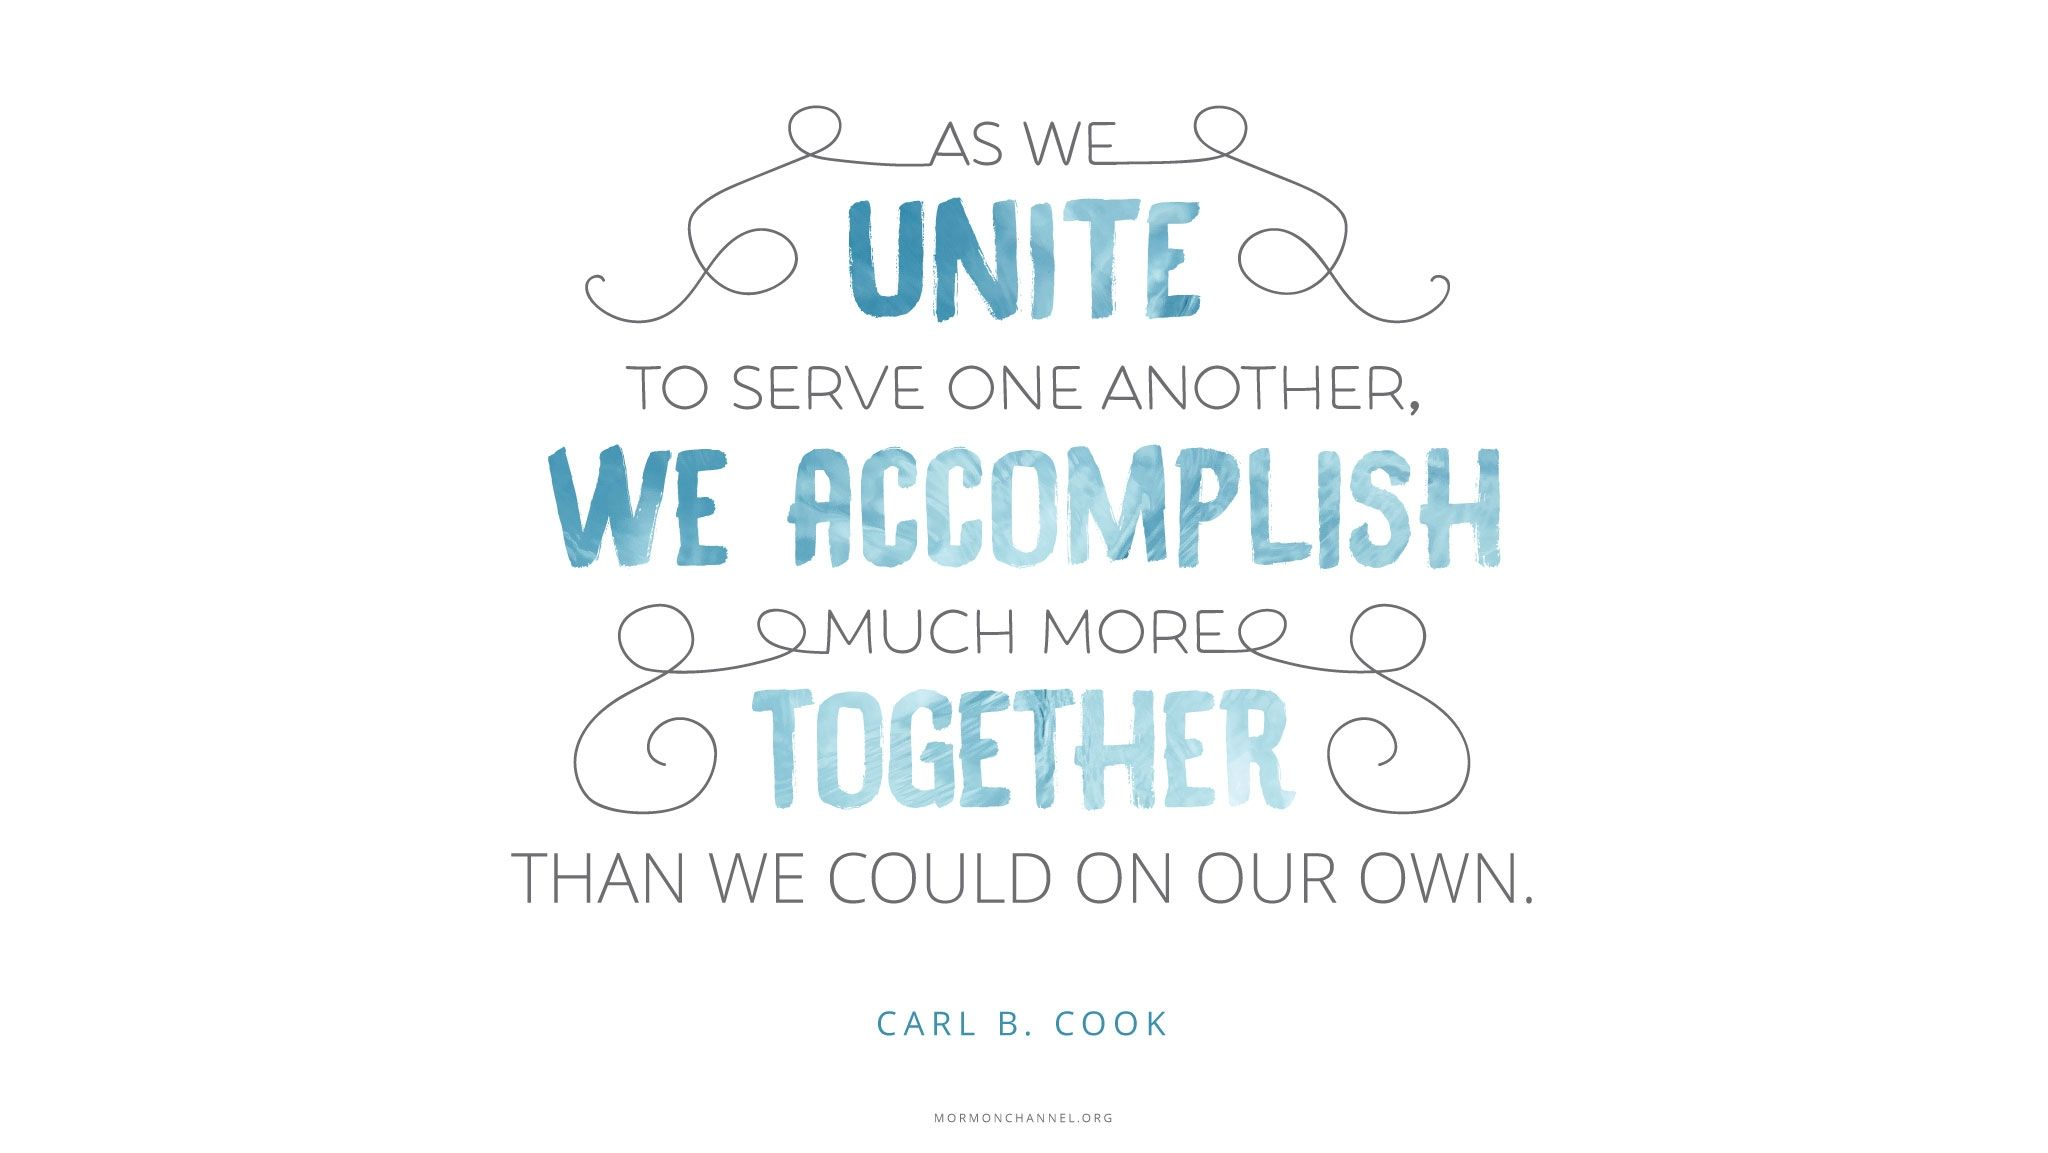 """""""As we unite to serve one another, we accomplish much more together than we could on our own.""""—Elder Carl B. Cook, """"Serve"""" © undefined ipCode 1."""